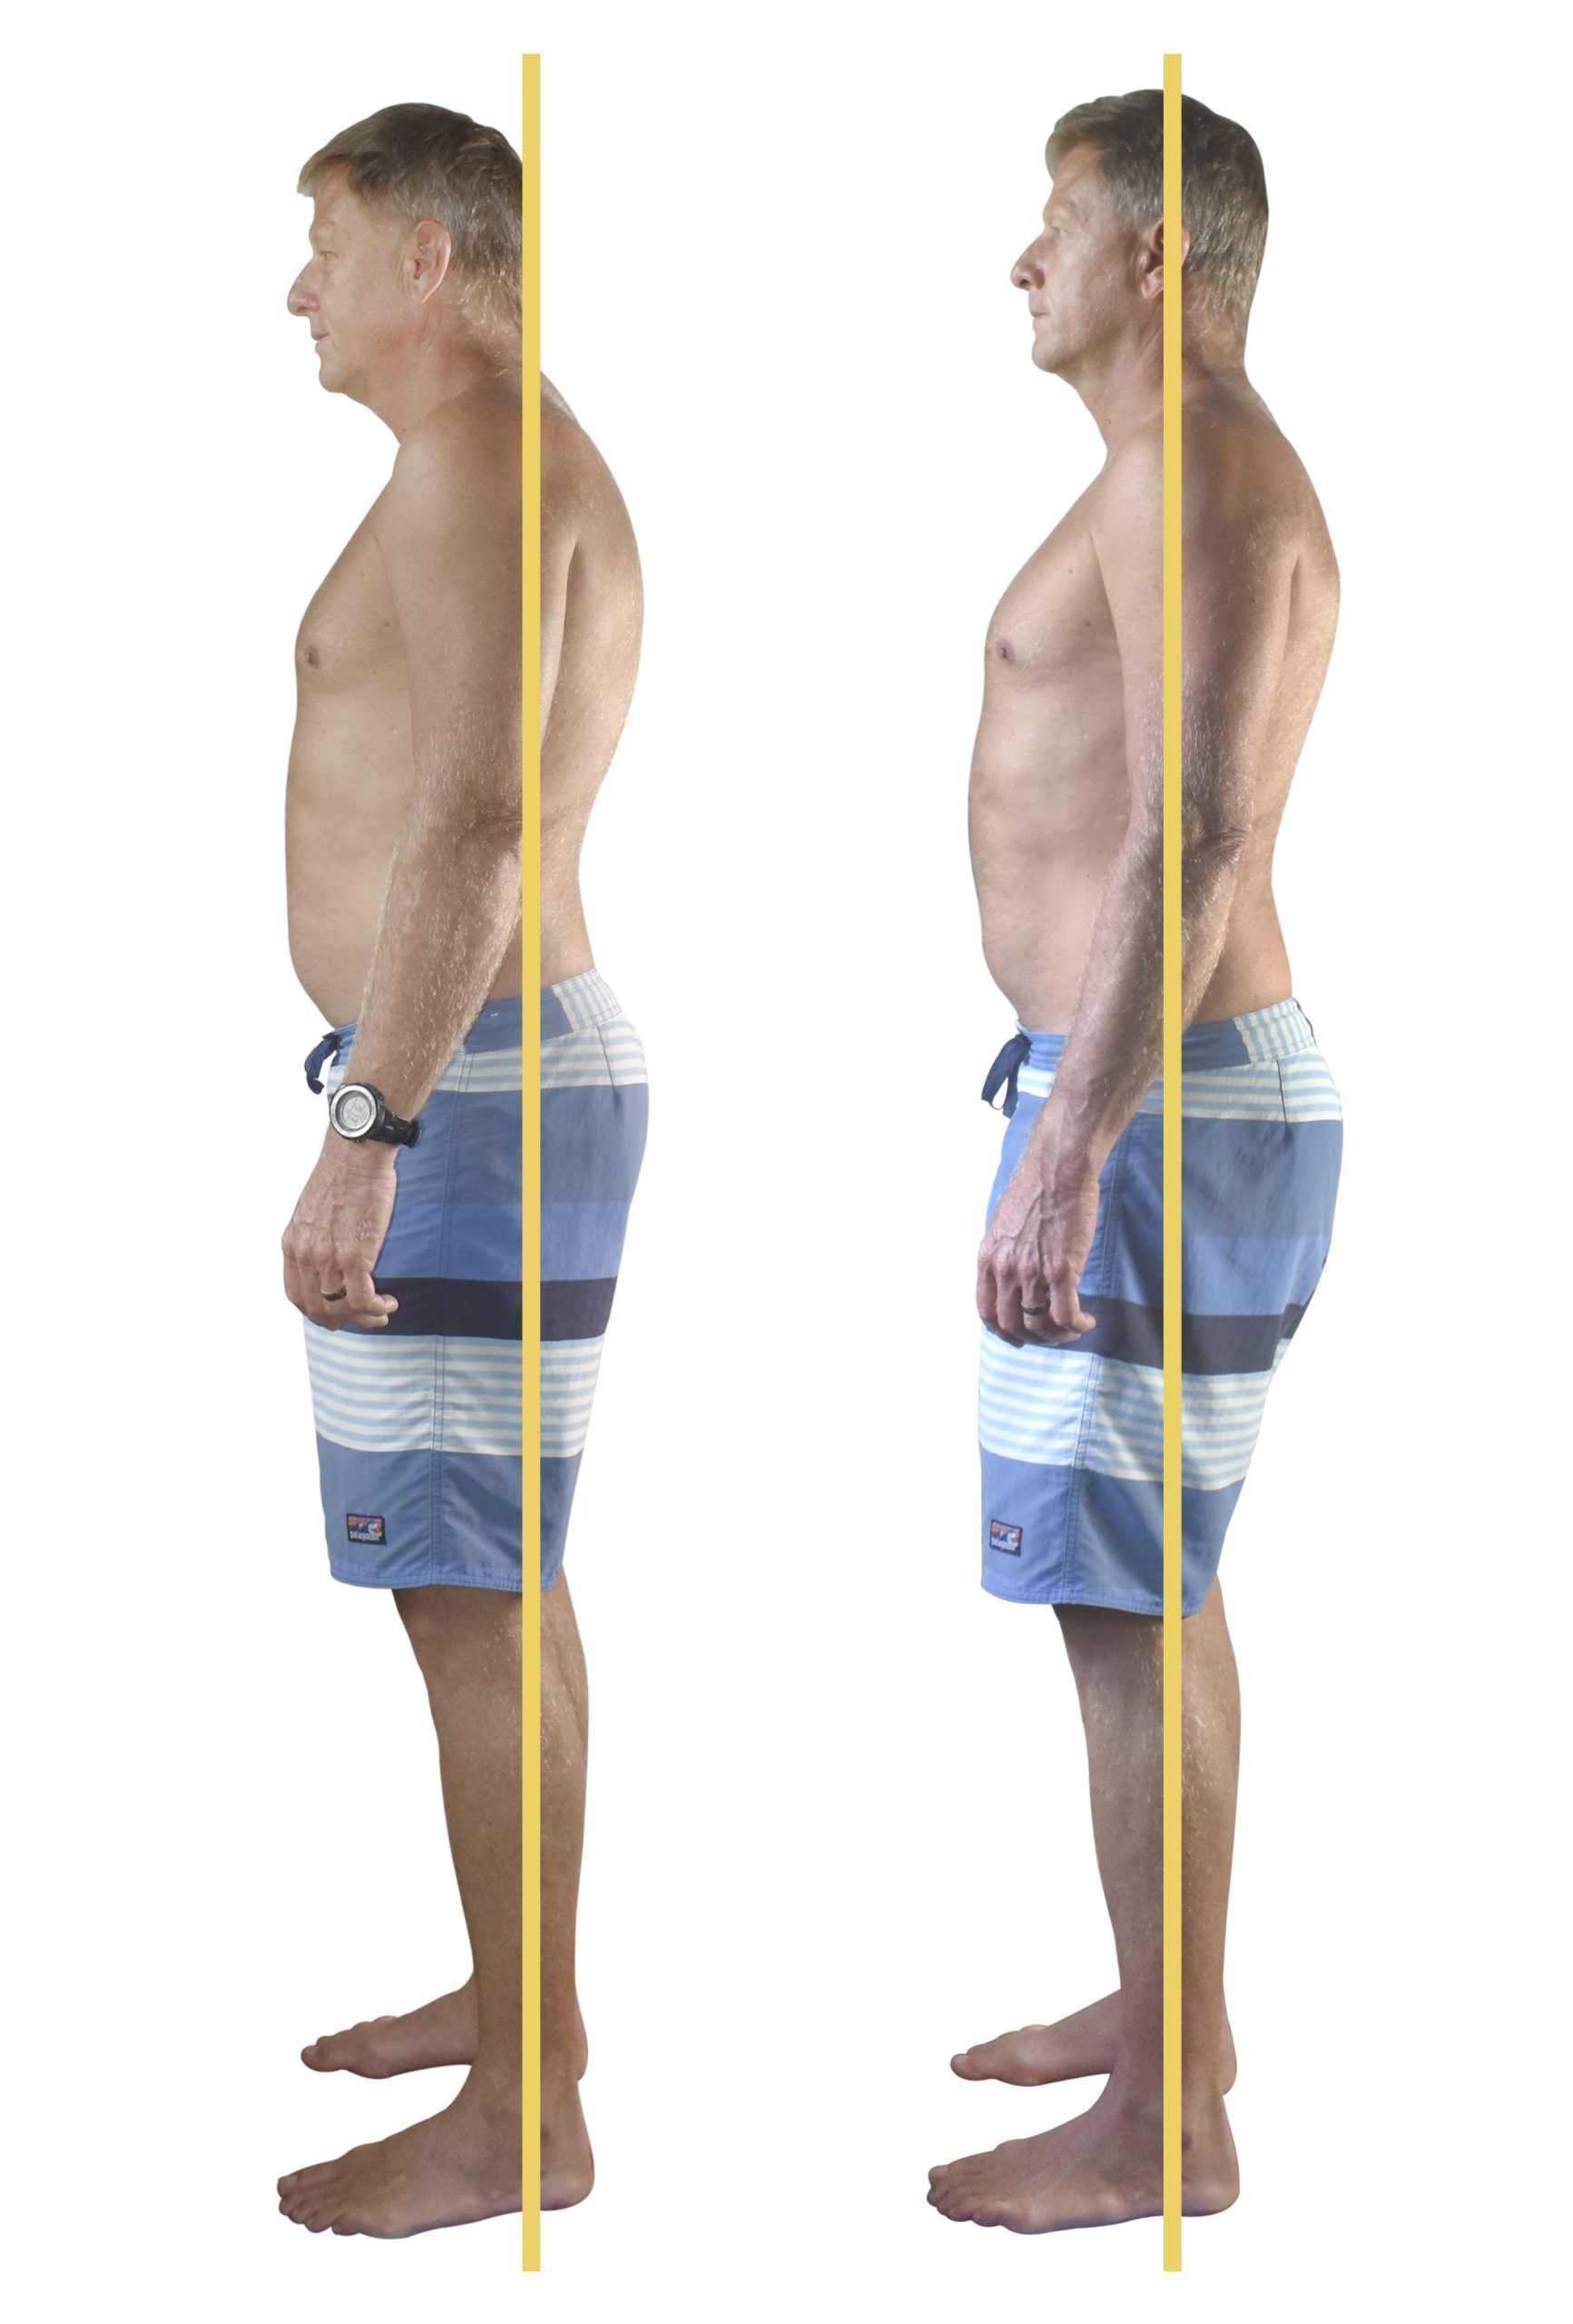 John, a professional firefighter with sciatica pain.Sculpted, toned and pain free in less than a week!